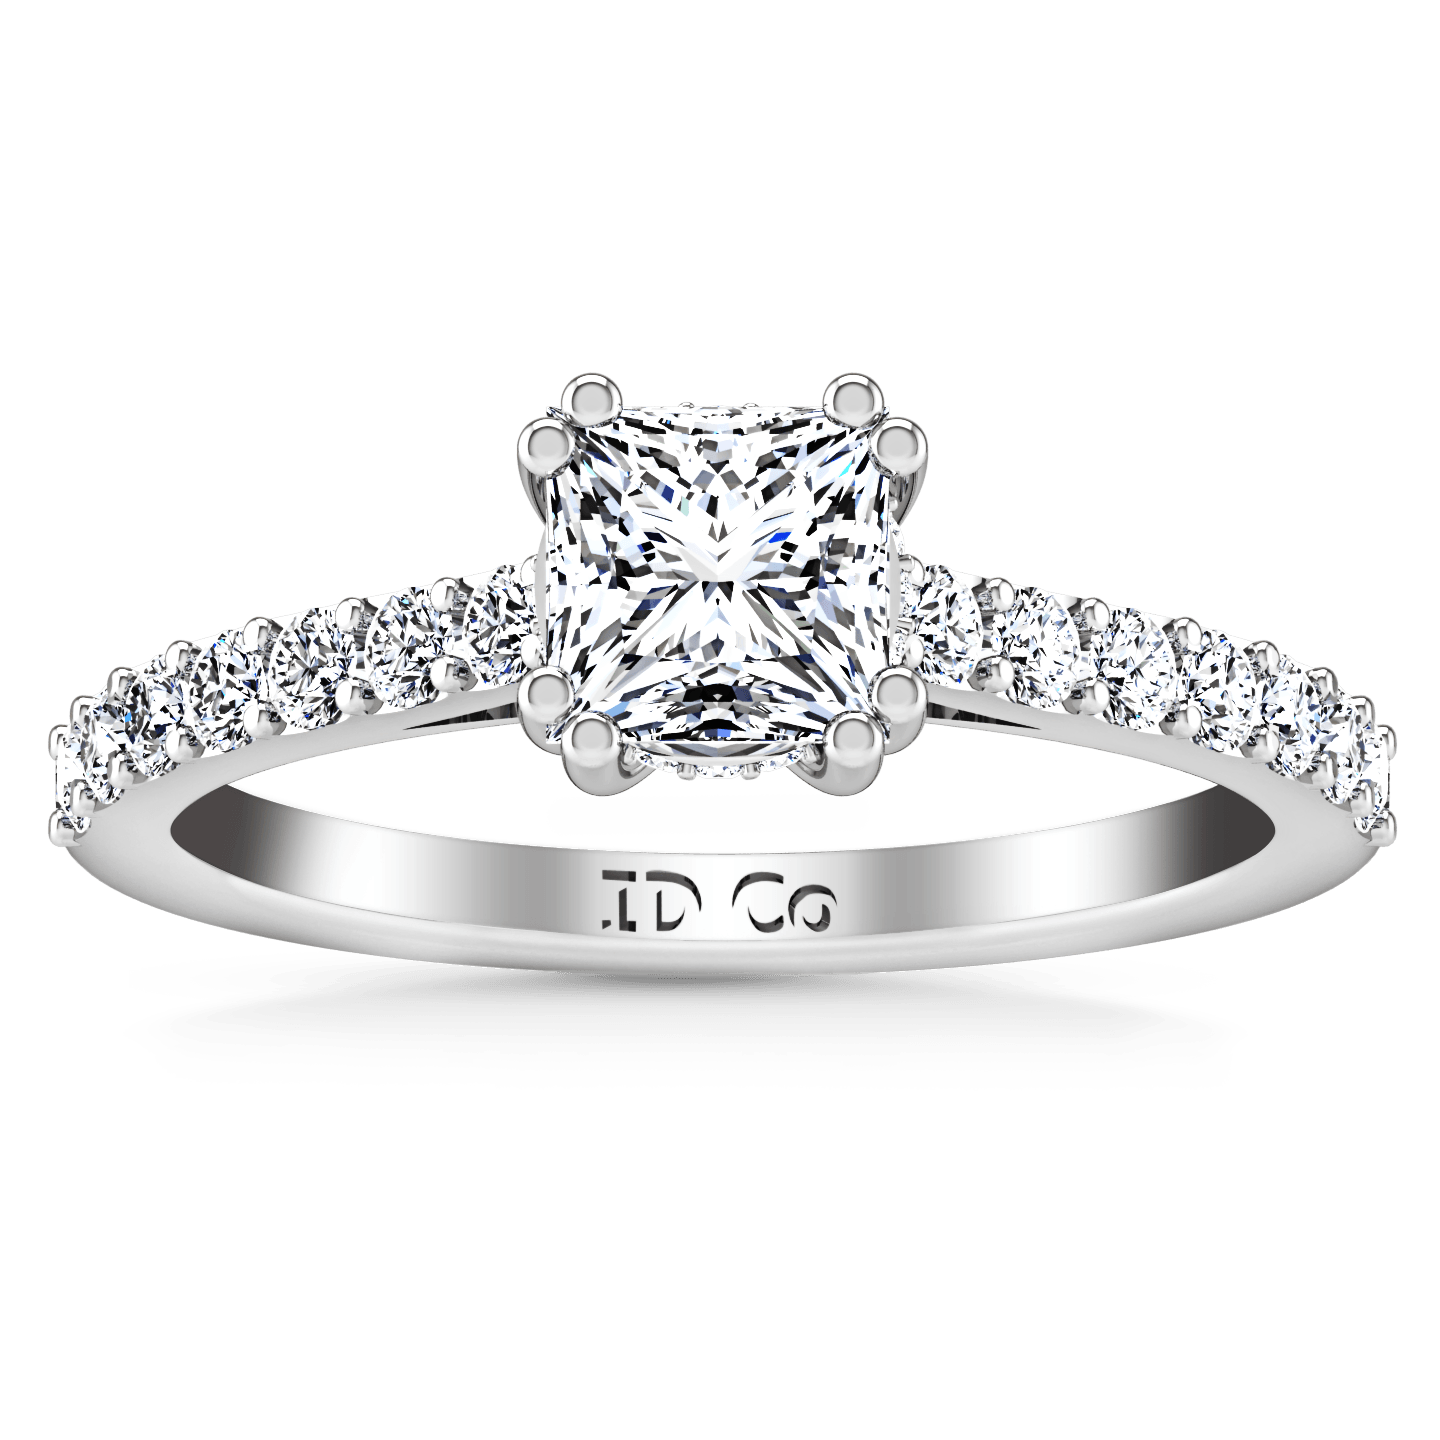 Pave Princess Cut Diamond Engagement Ring Jasmine 14K White Gold